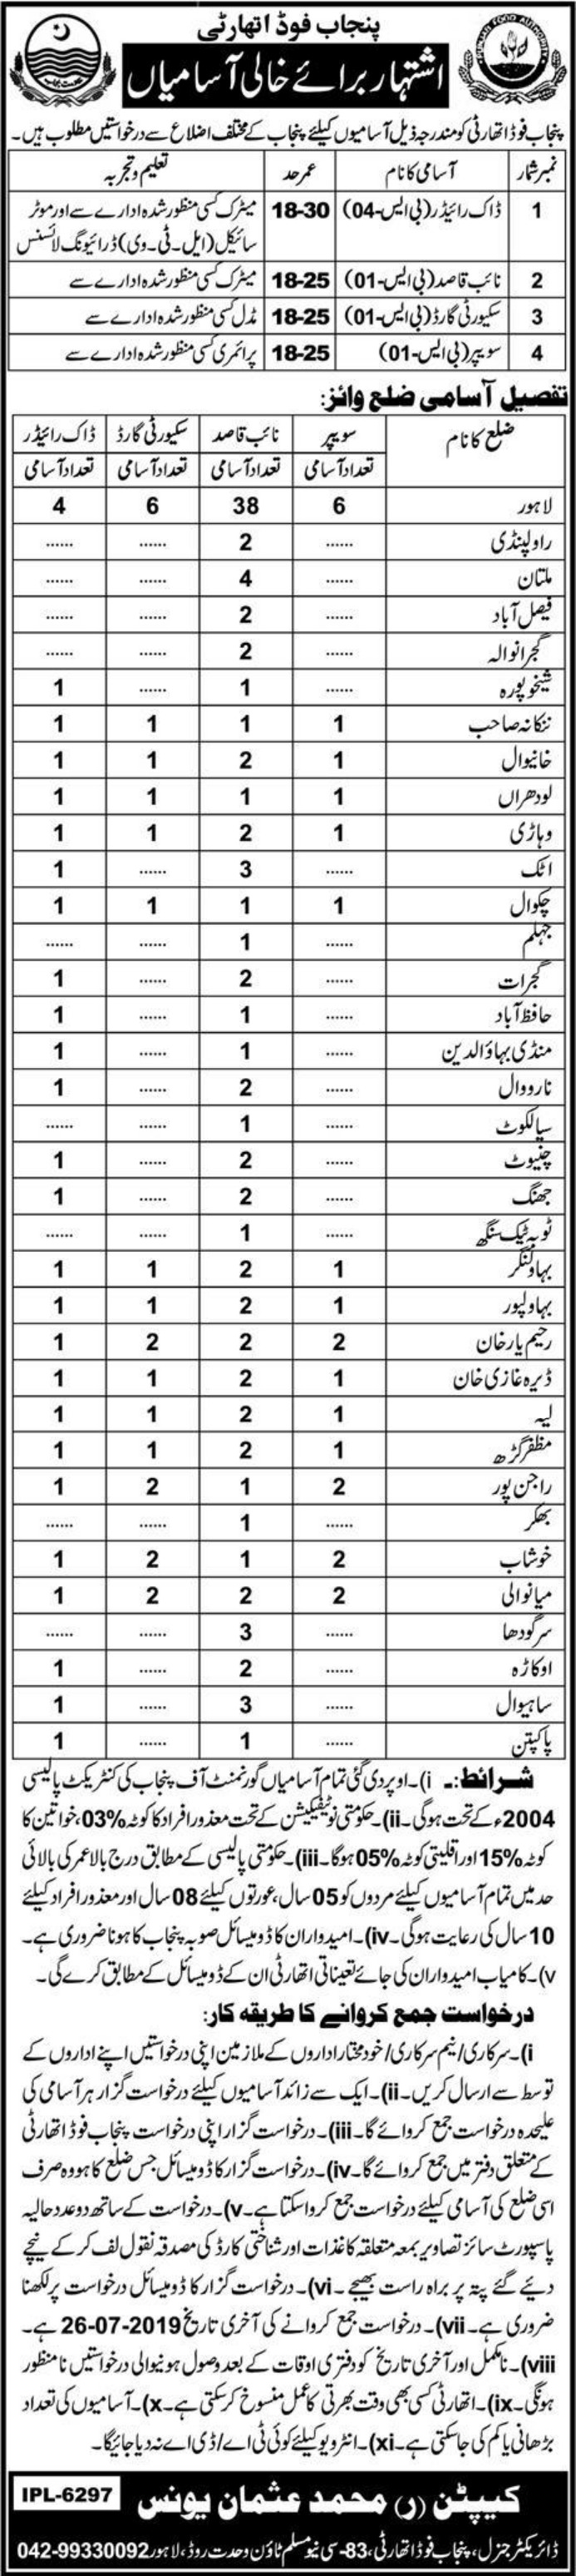 Punjab Food Authority PFA Jobs 2019